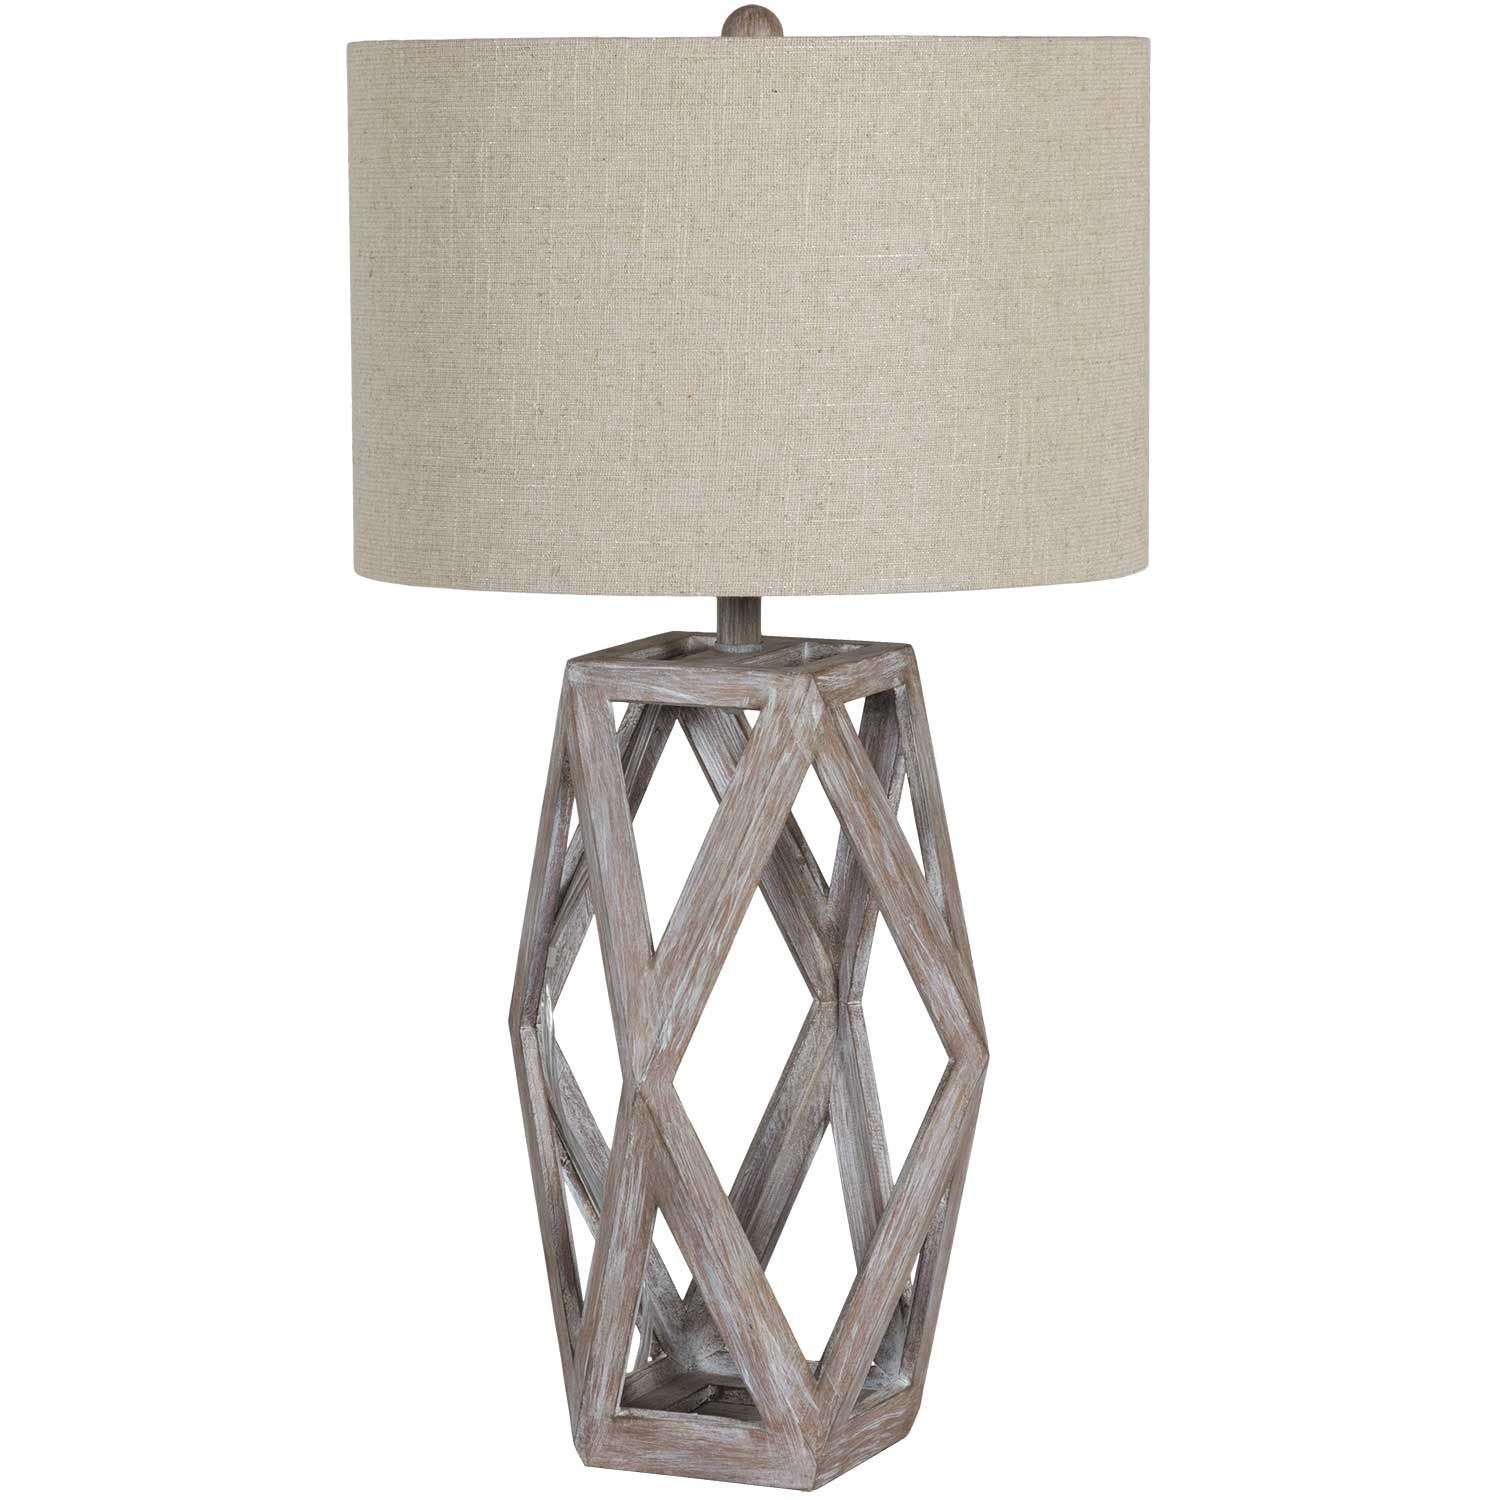 Picture of Wooden open base table lamp